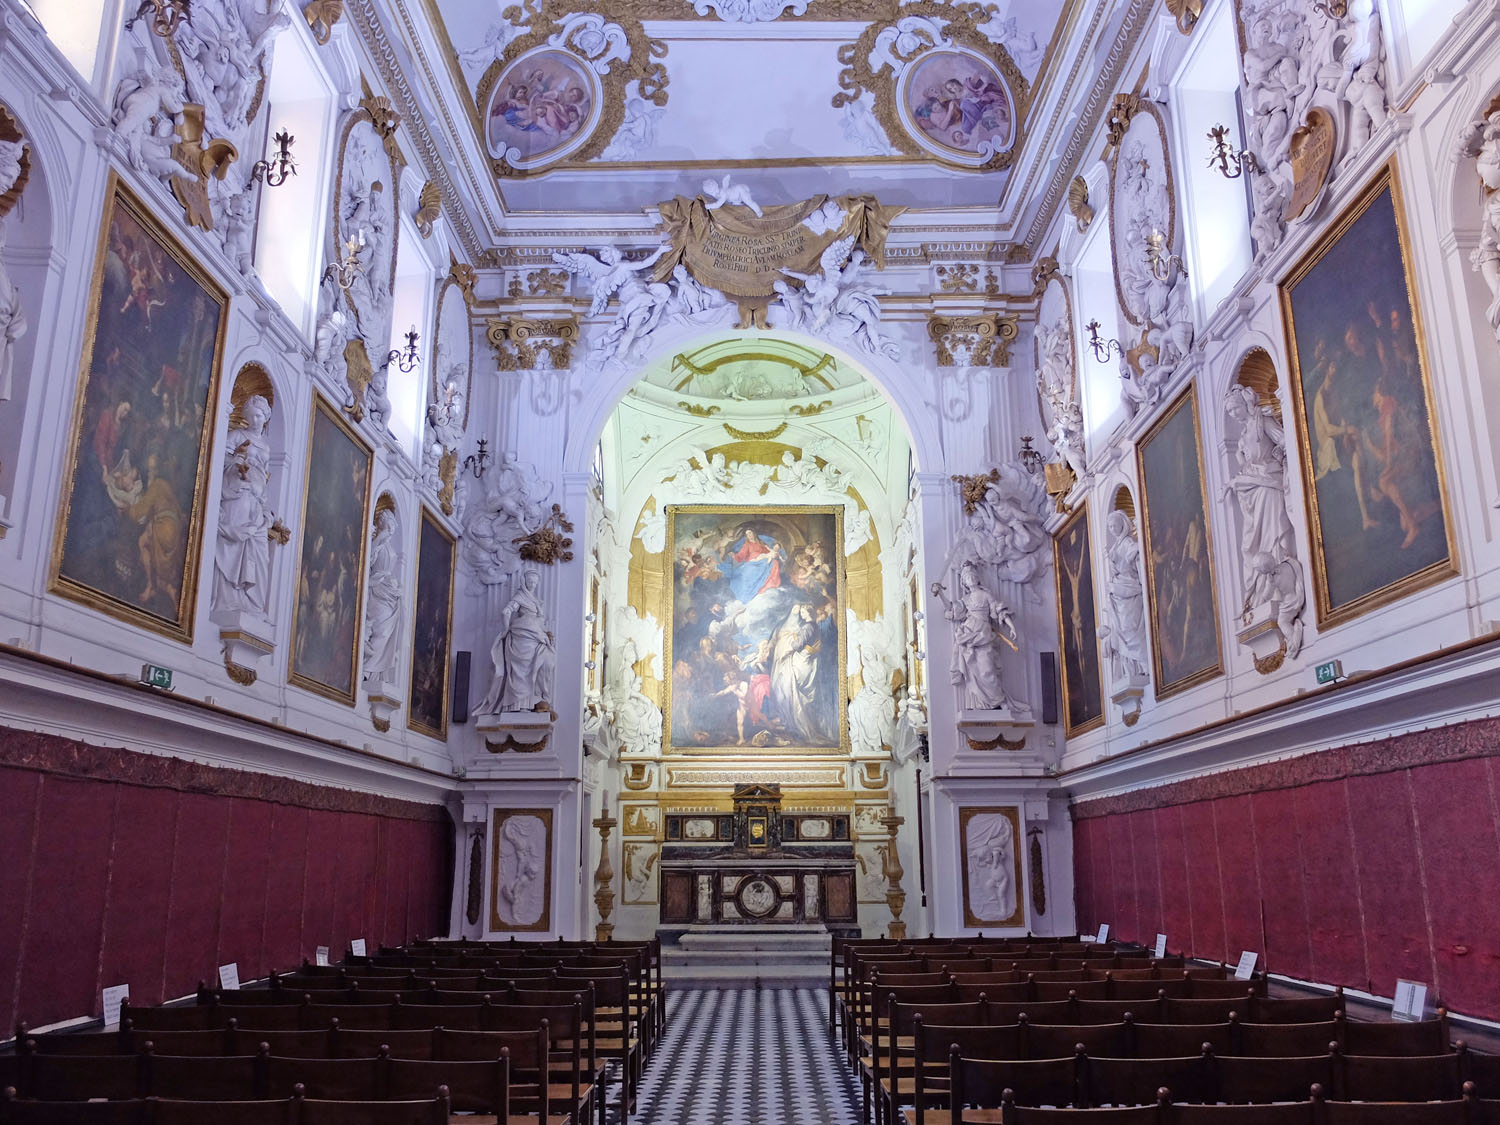 Oratorio di San Domenico